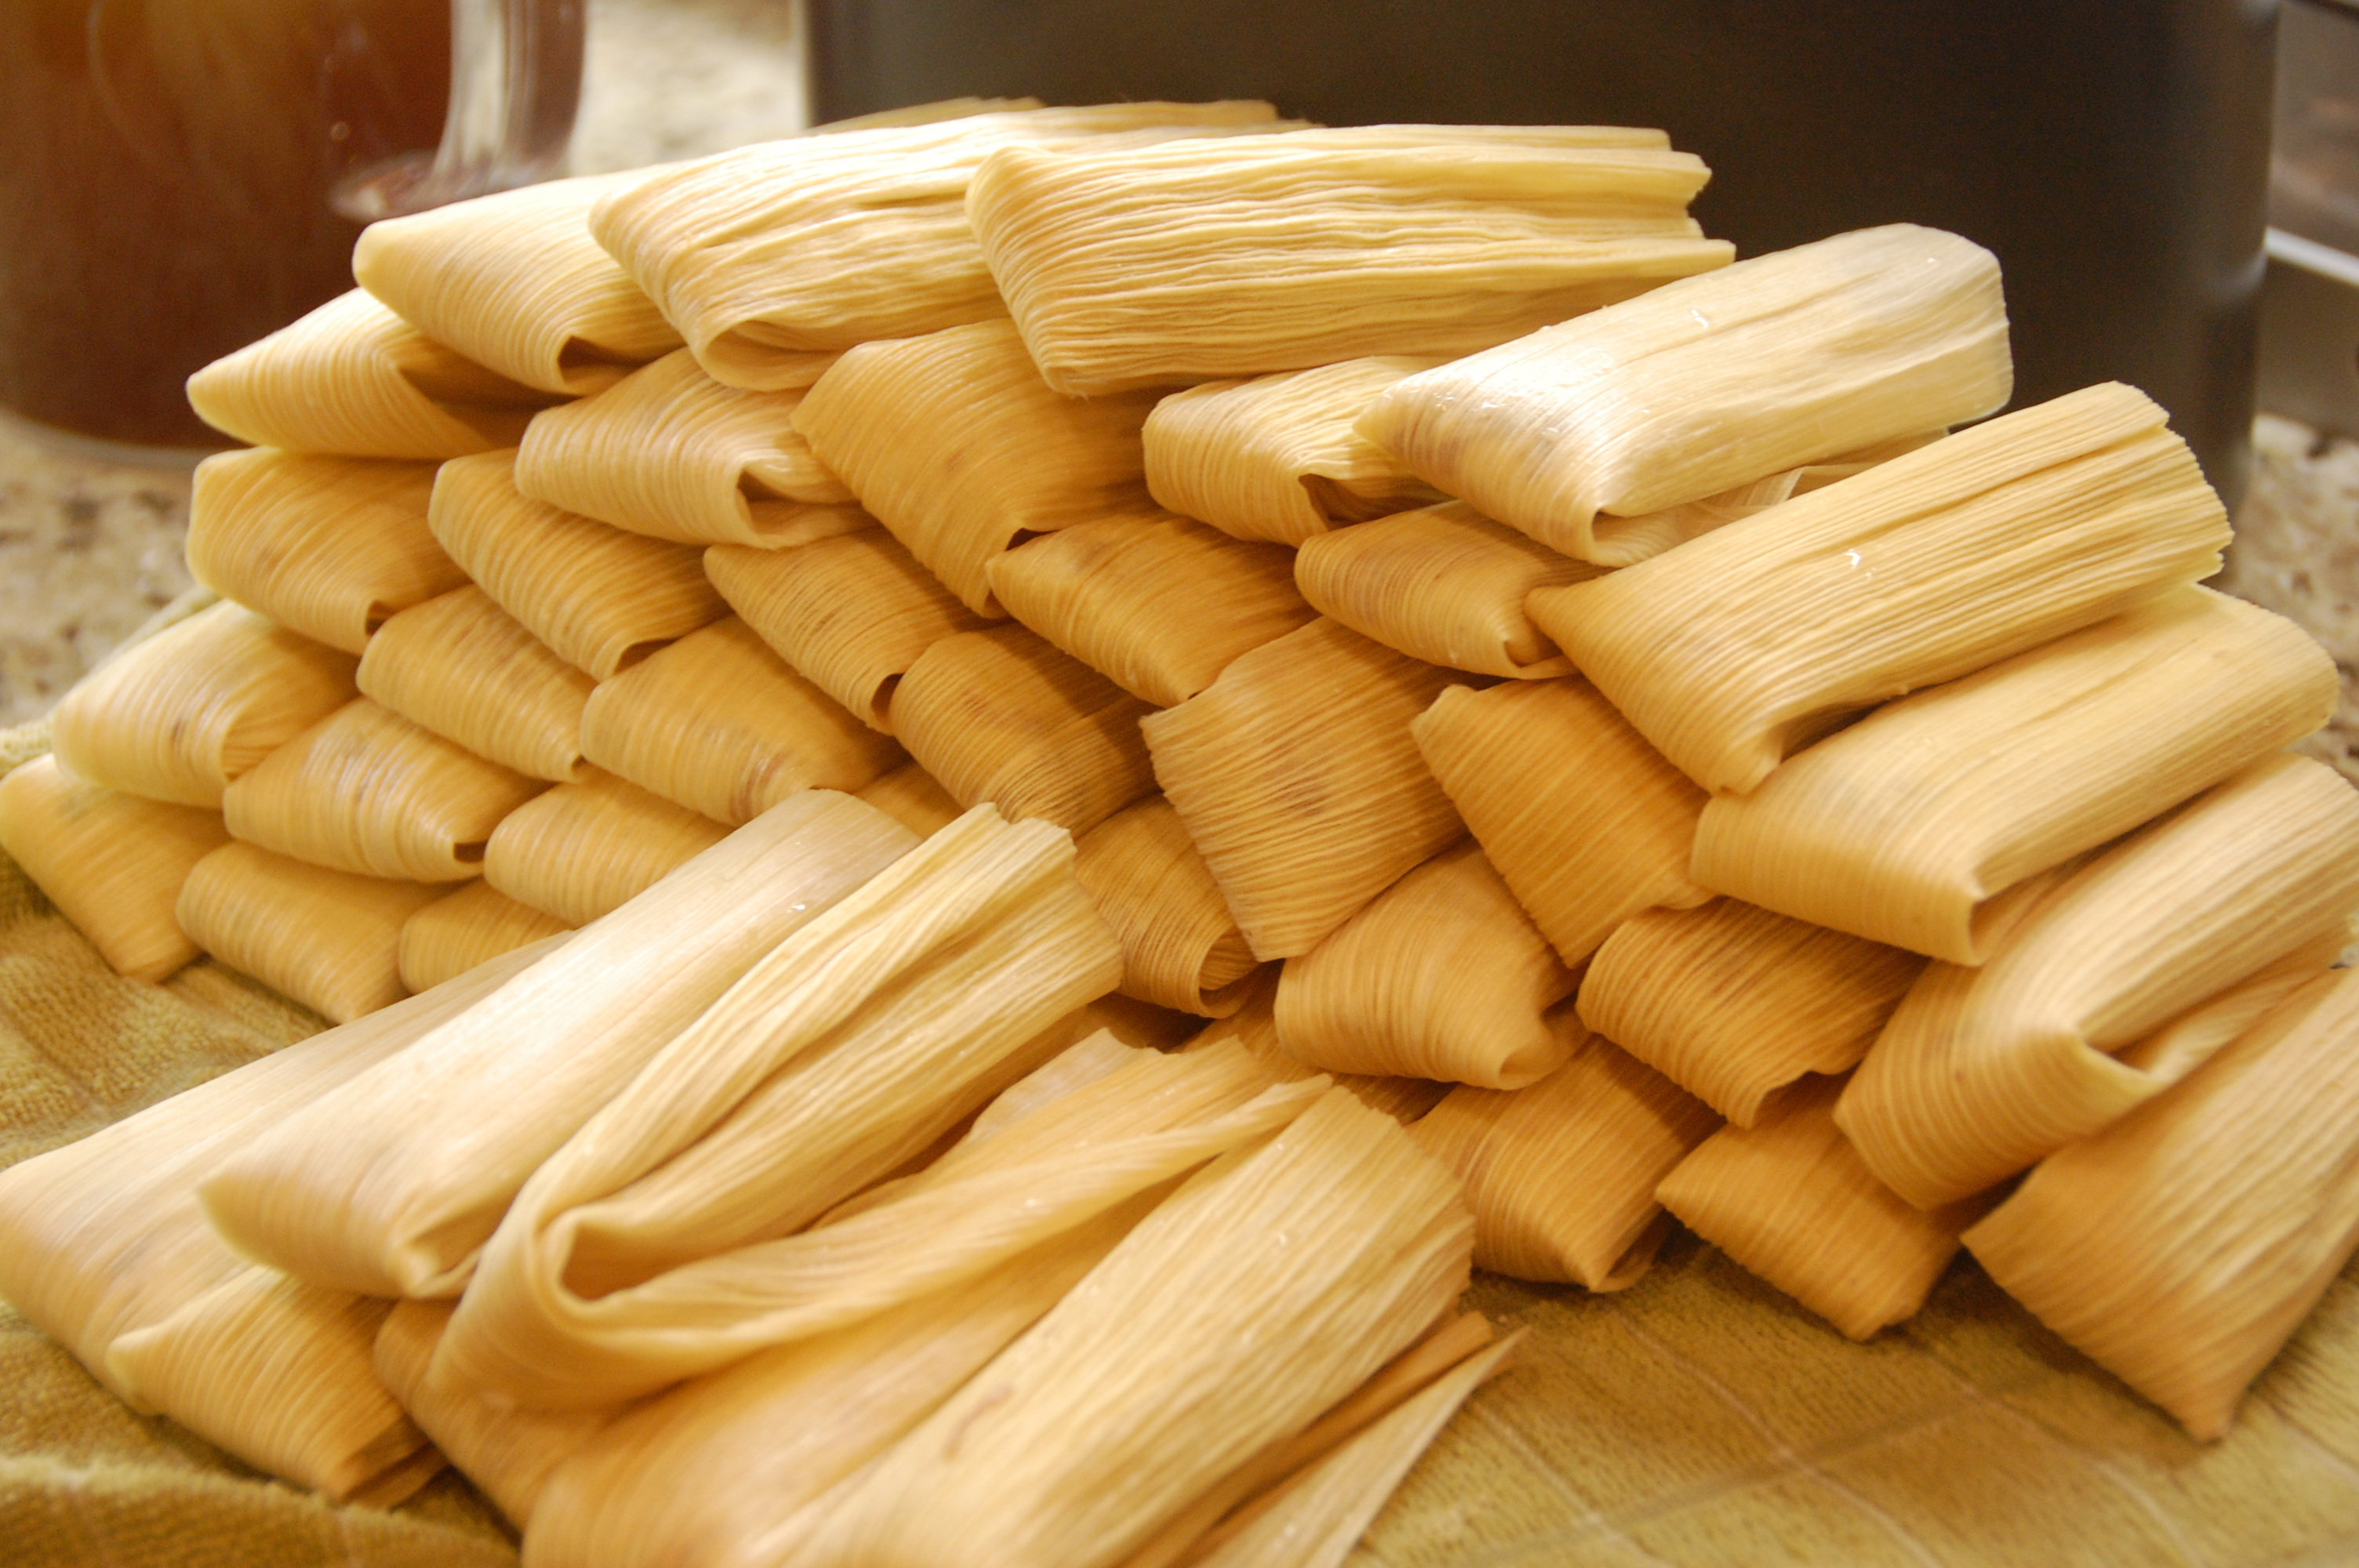 Fresh homemade tamales is one of the many unique items offered through the years.